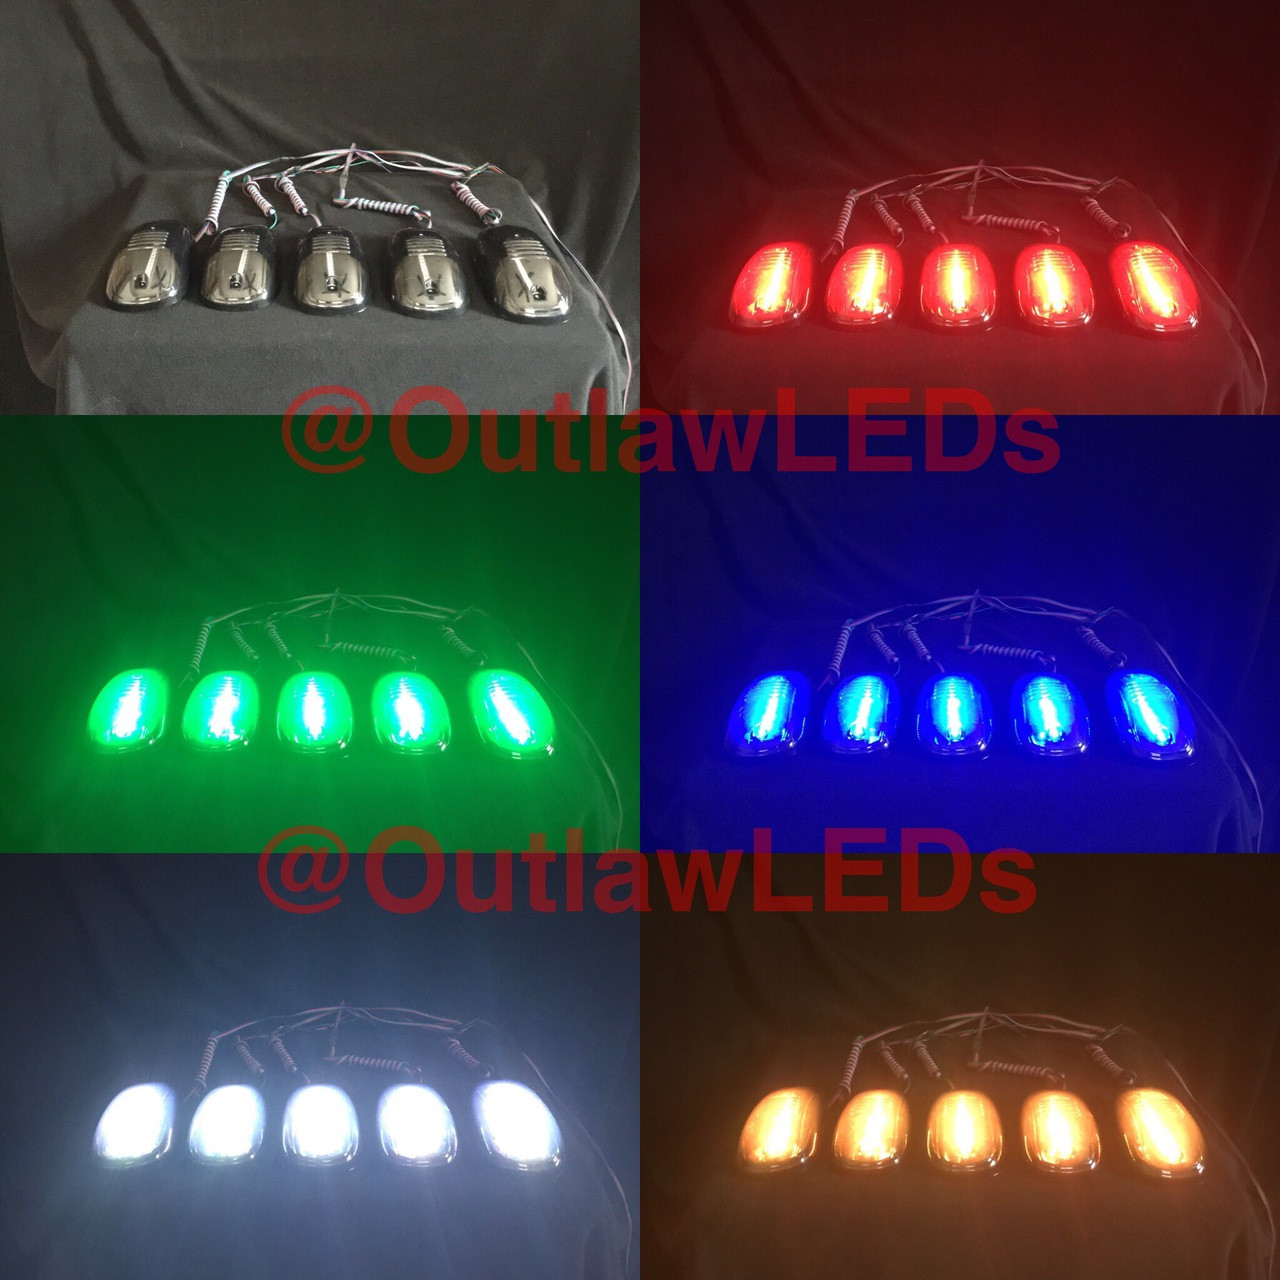 Color Changing Cab Lights - OutlawLEDs